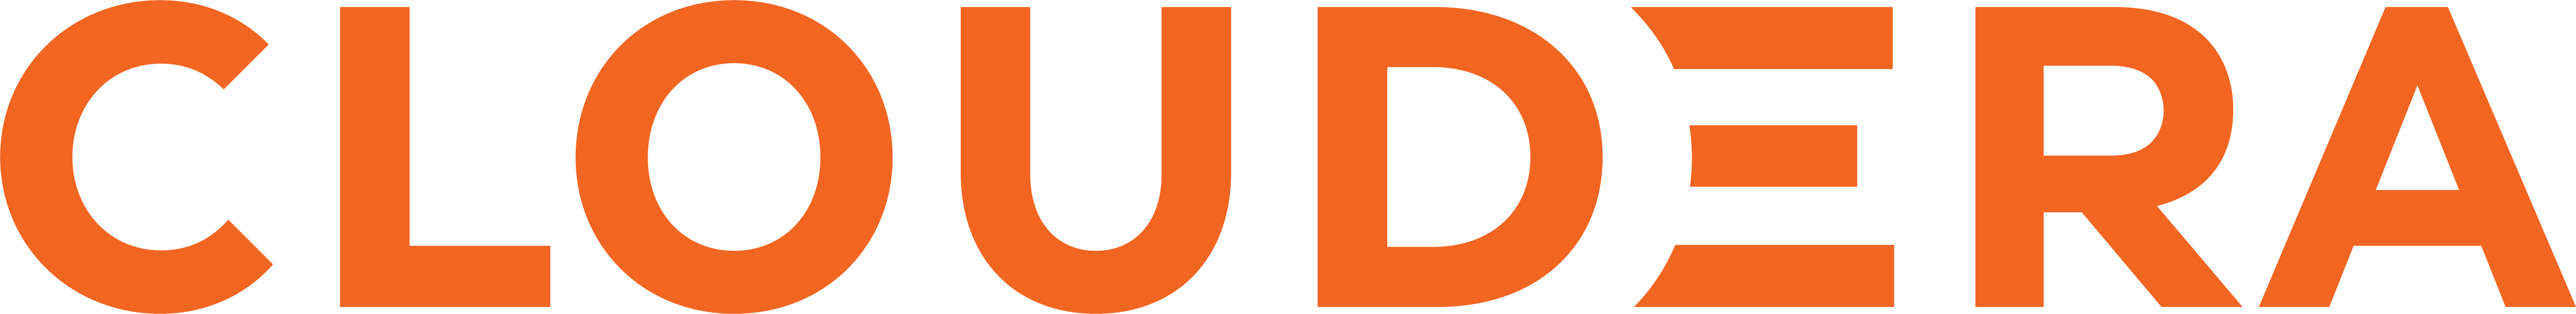 File:Cloudera logo darkorange.png - Wikipedia